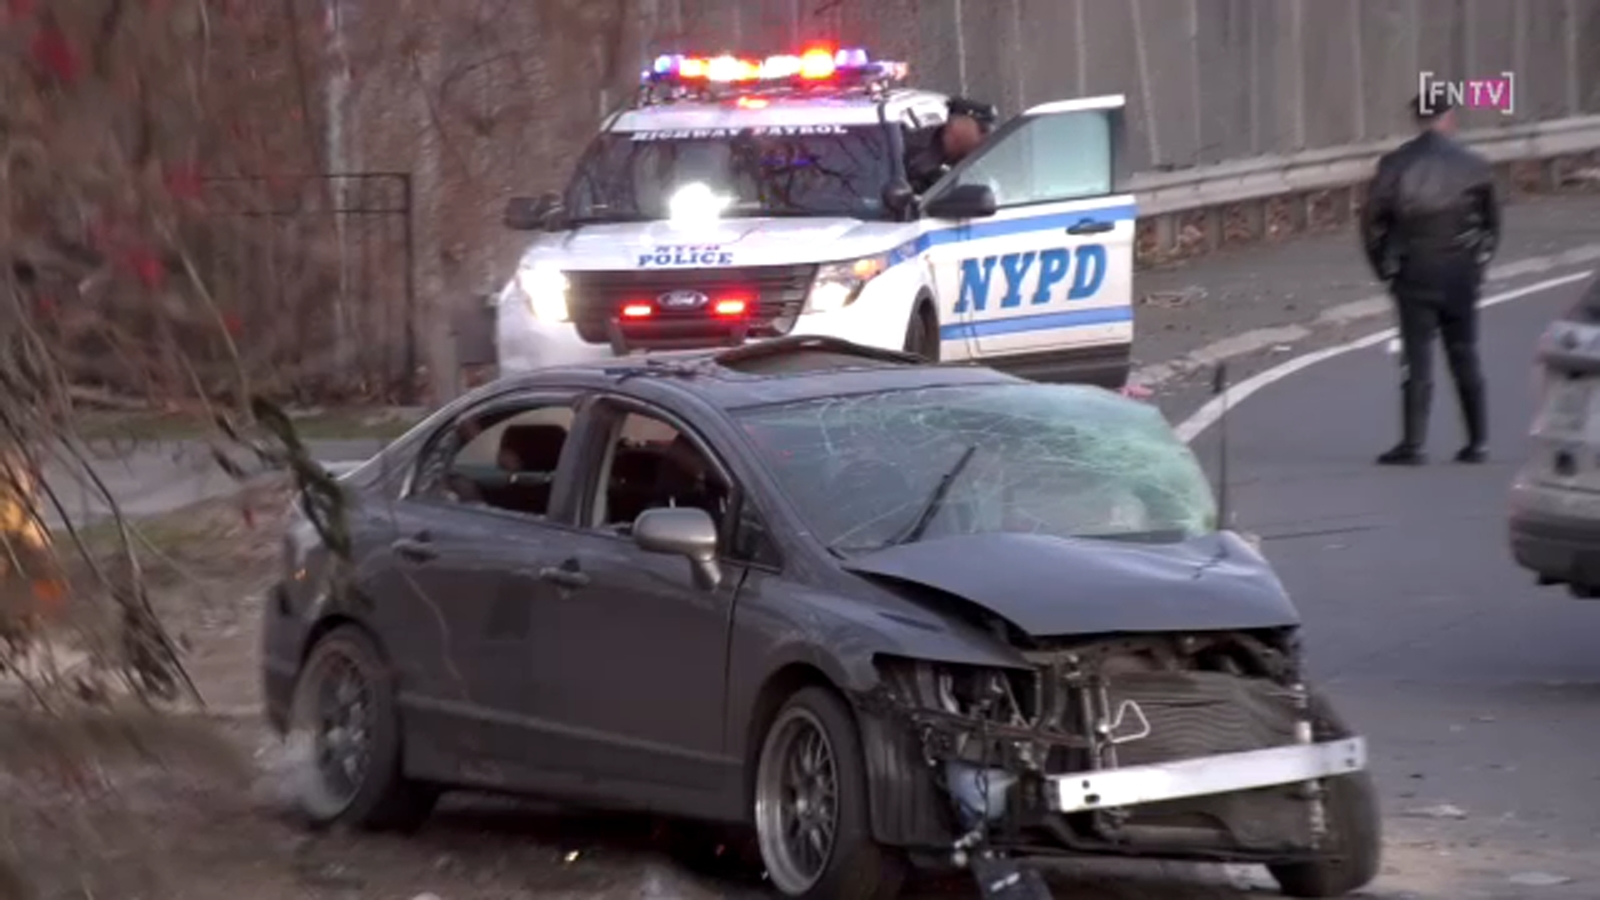 Passenger critically injured in hit-and-run on the Major Deegan Expressway